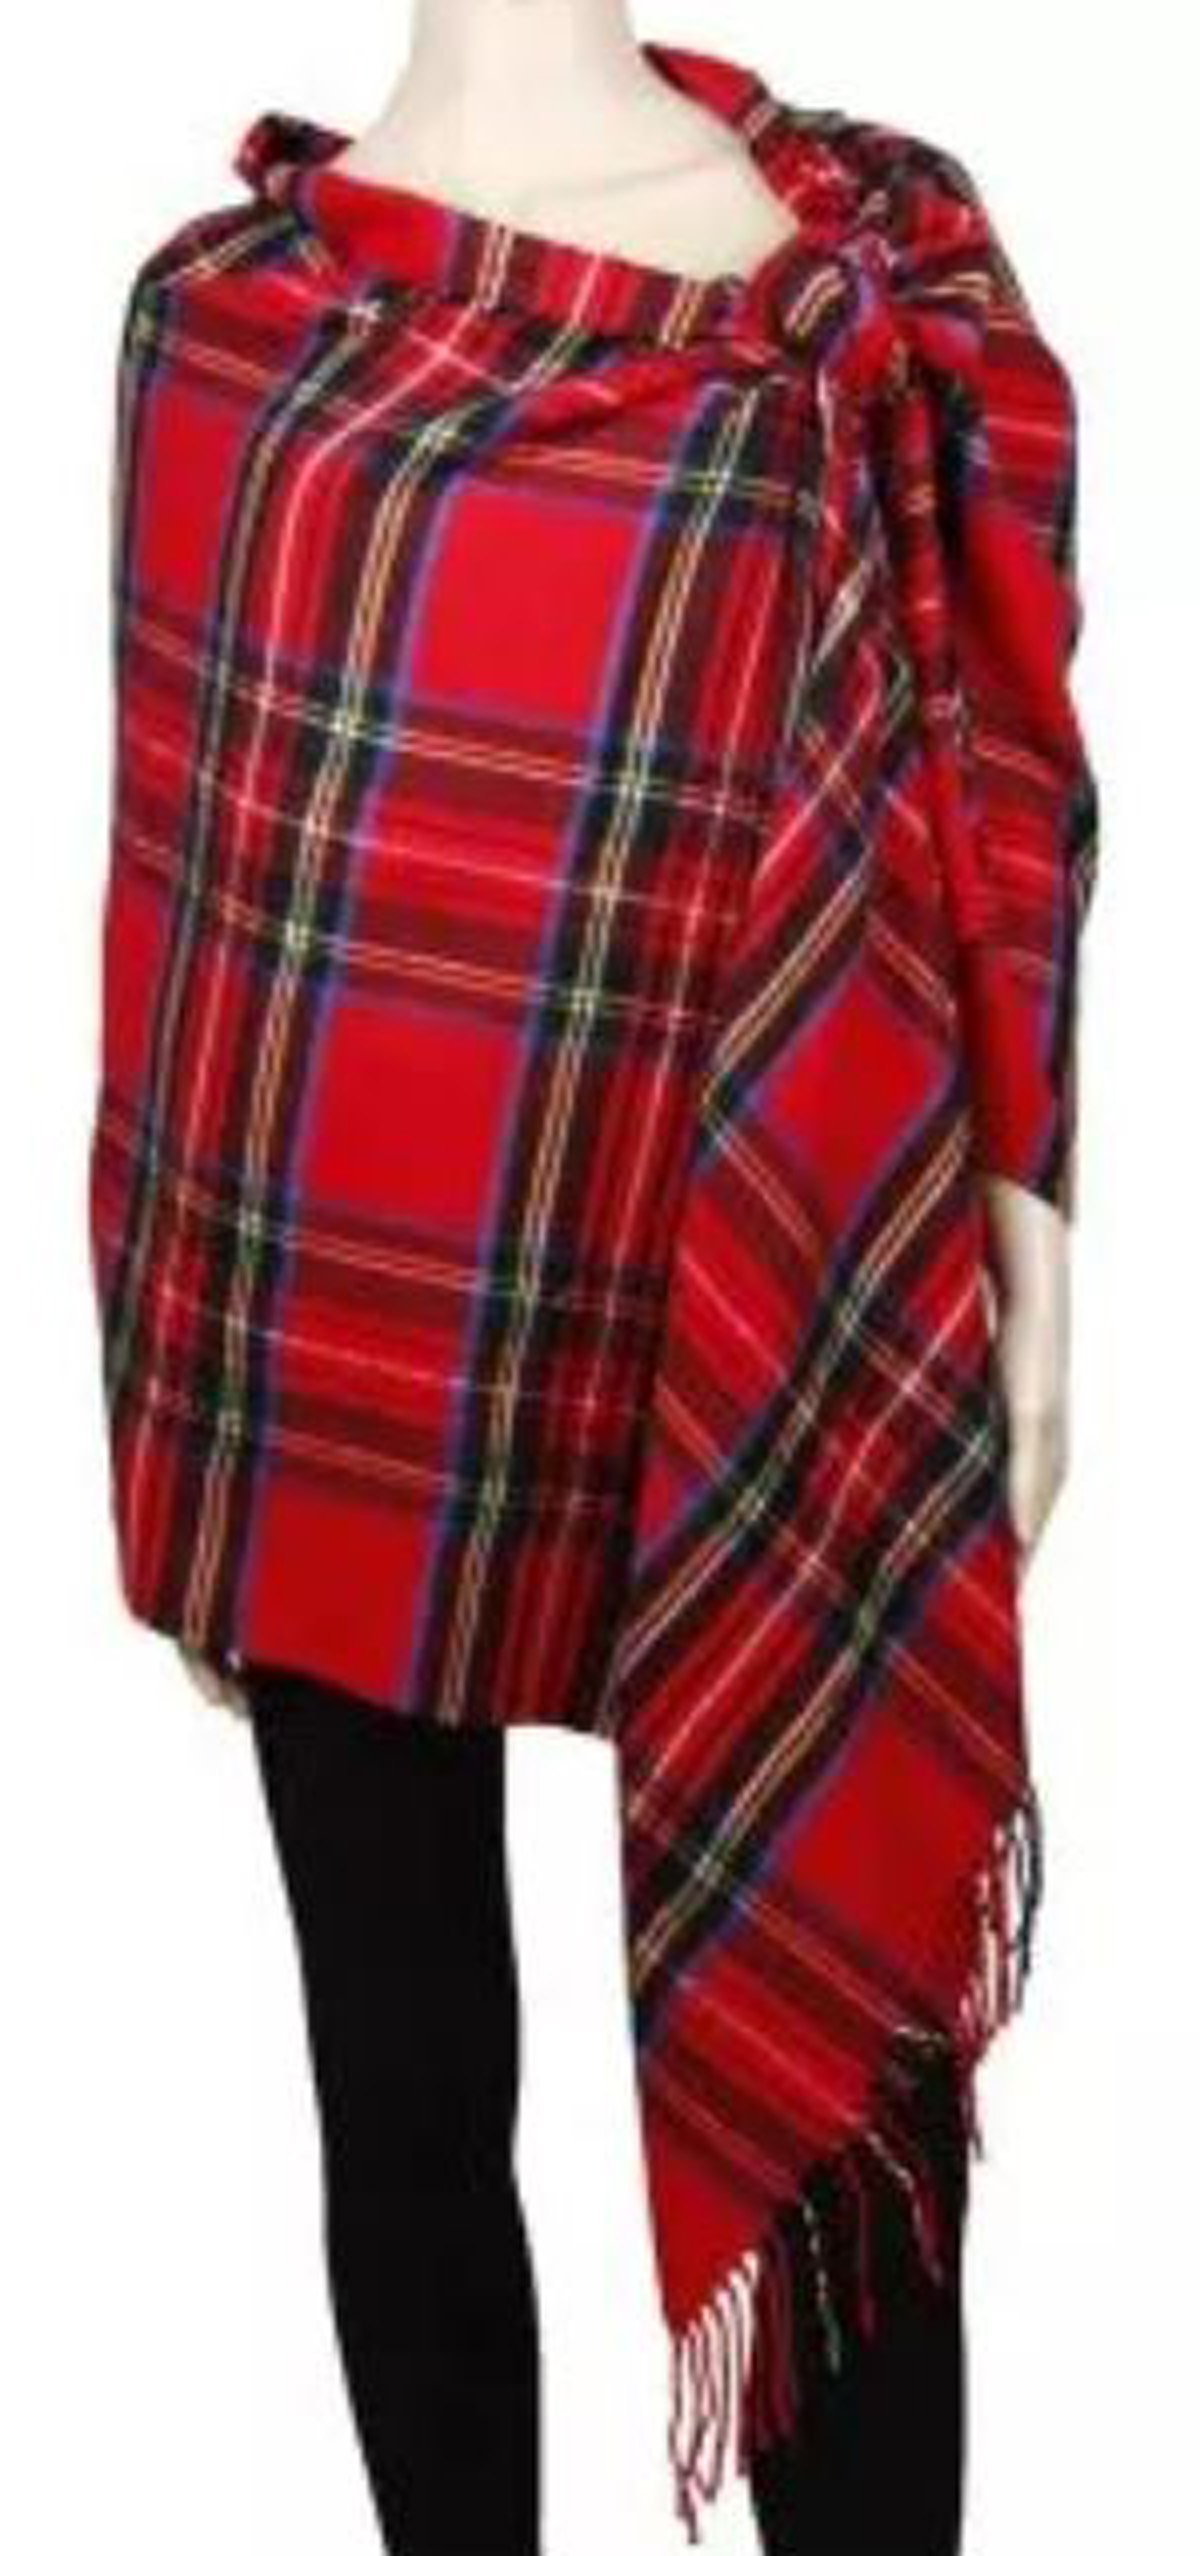 APPARELISM Women's Winter Scottish Clan Plaid Oversized Cashmere Feel Blanket Scarf Wrap Shawl.(Plaid Red) by APPARELISM (Image #4)